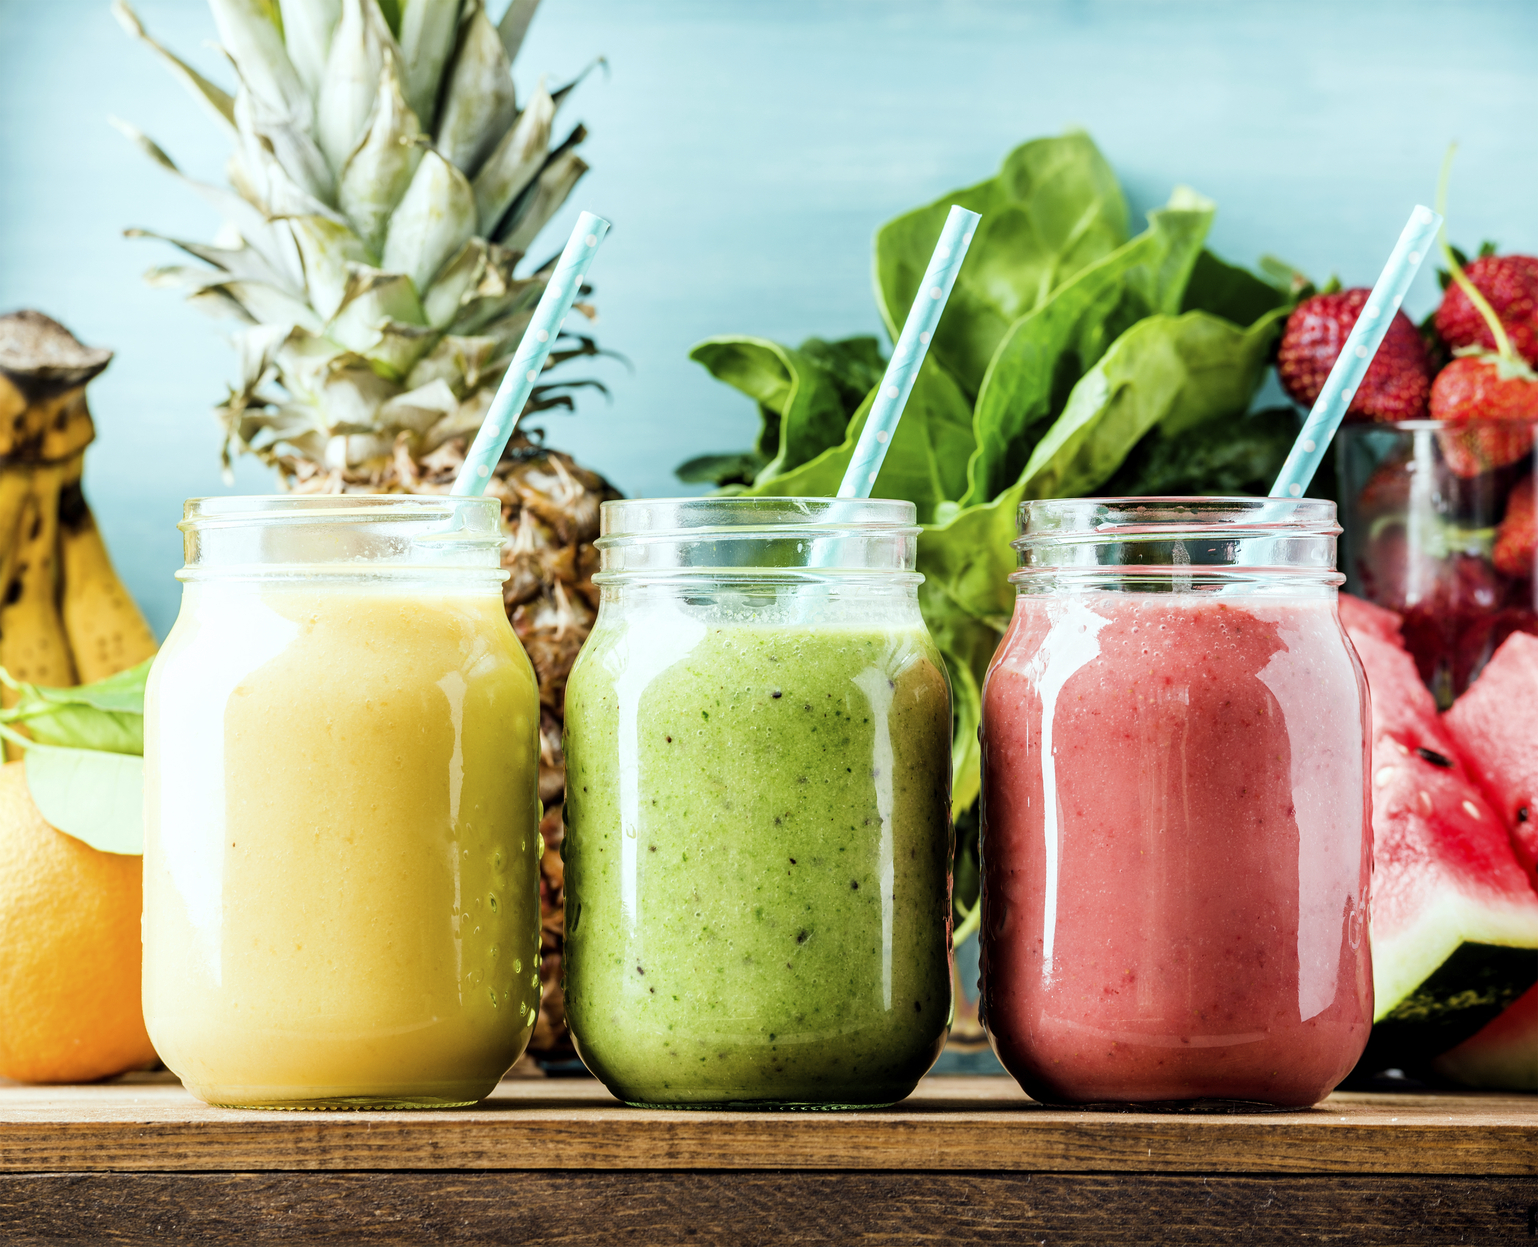 Delish Juices That Are Worth Every Last Squeeze! in Mumbai cover pic